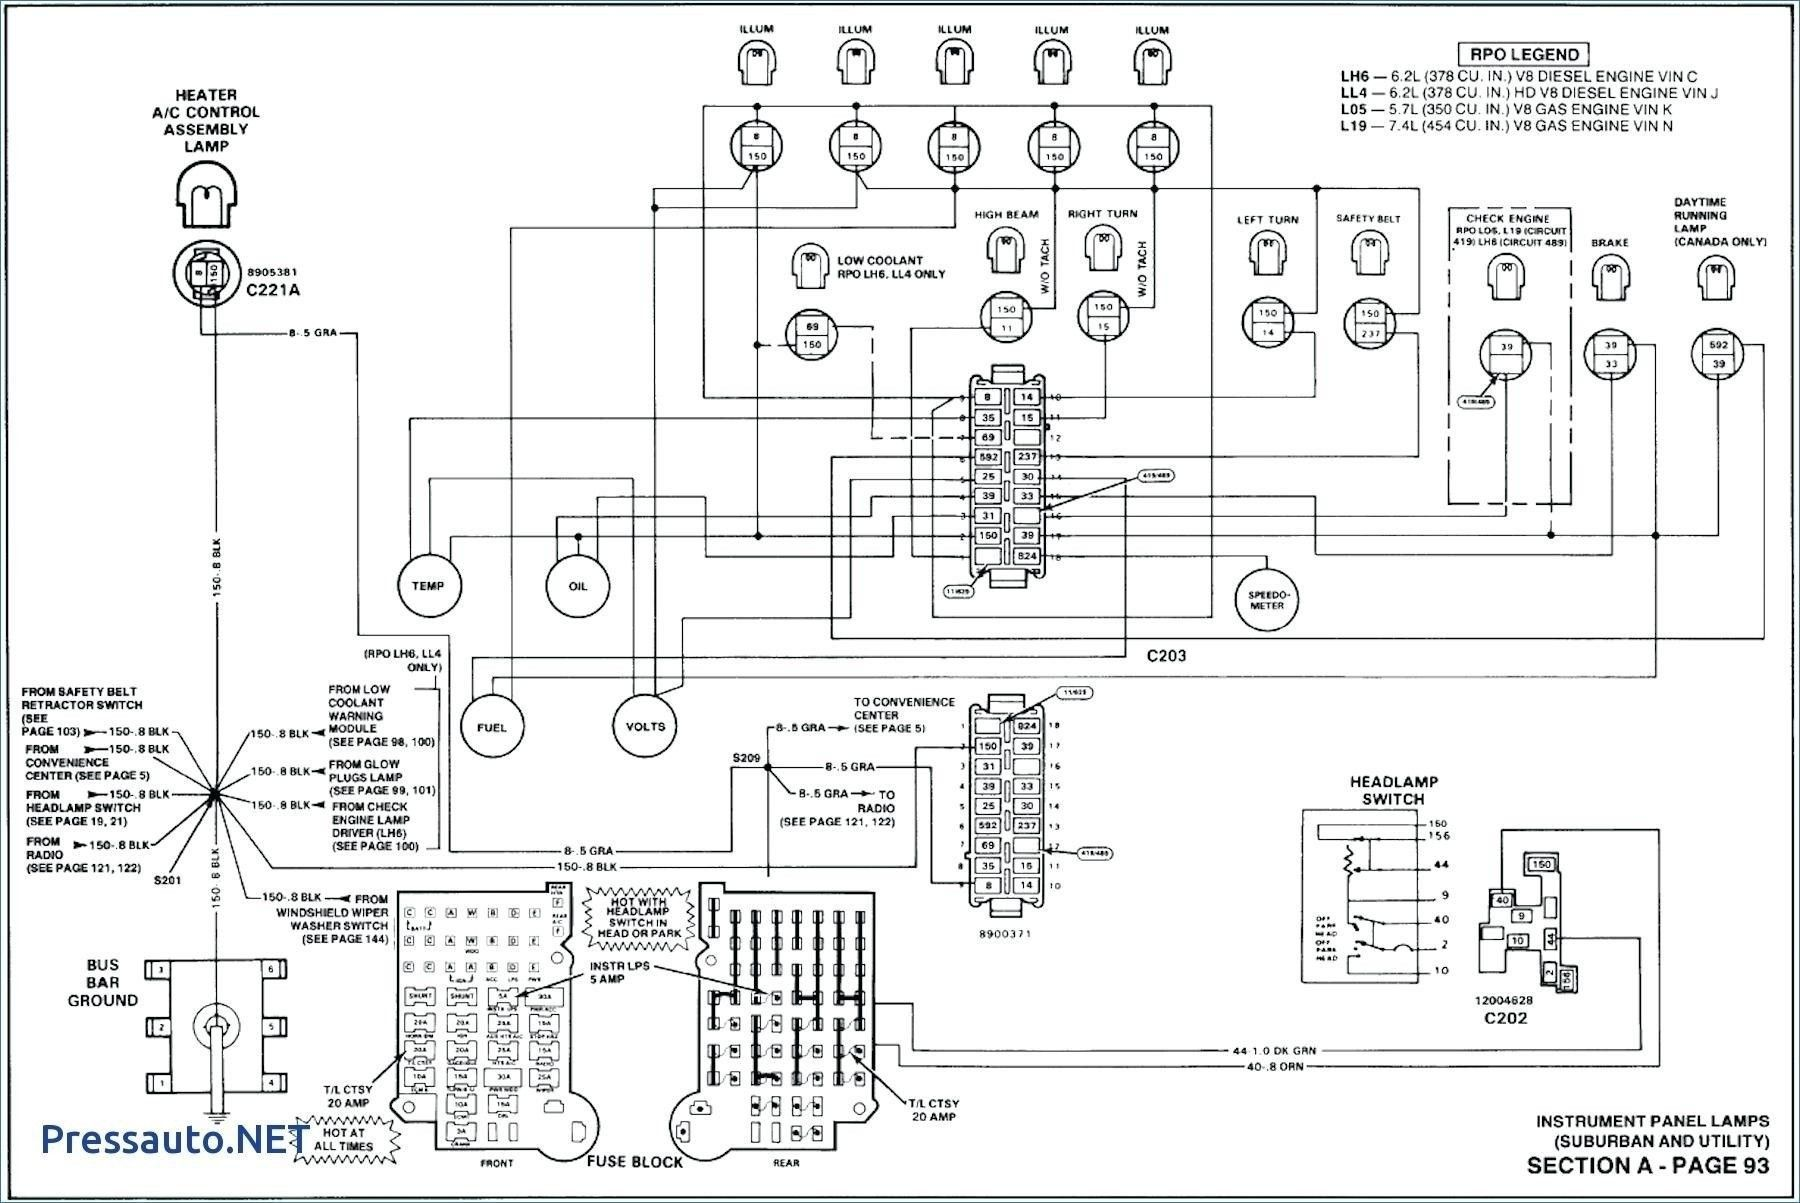 Heater Ford Schematic Wiring 2013fuses Wiring Diagram Circuit Control Circuit Control Rilievo3d It